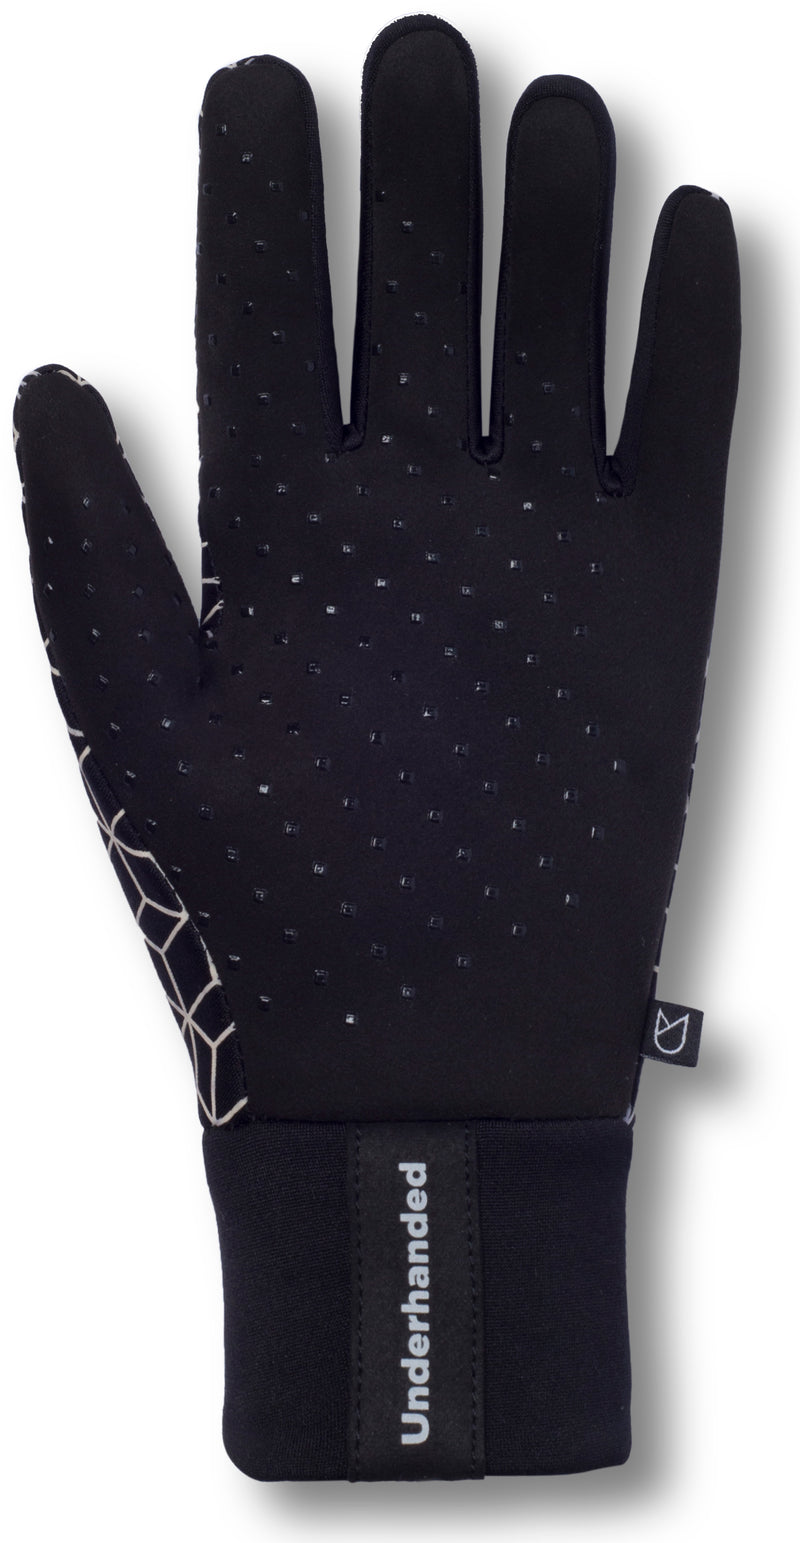 Underhanded Super Cube Gloves